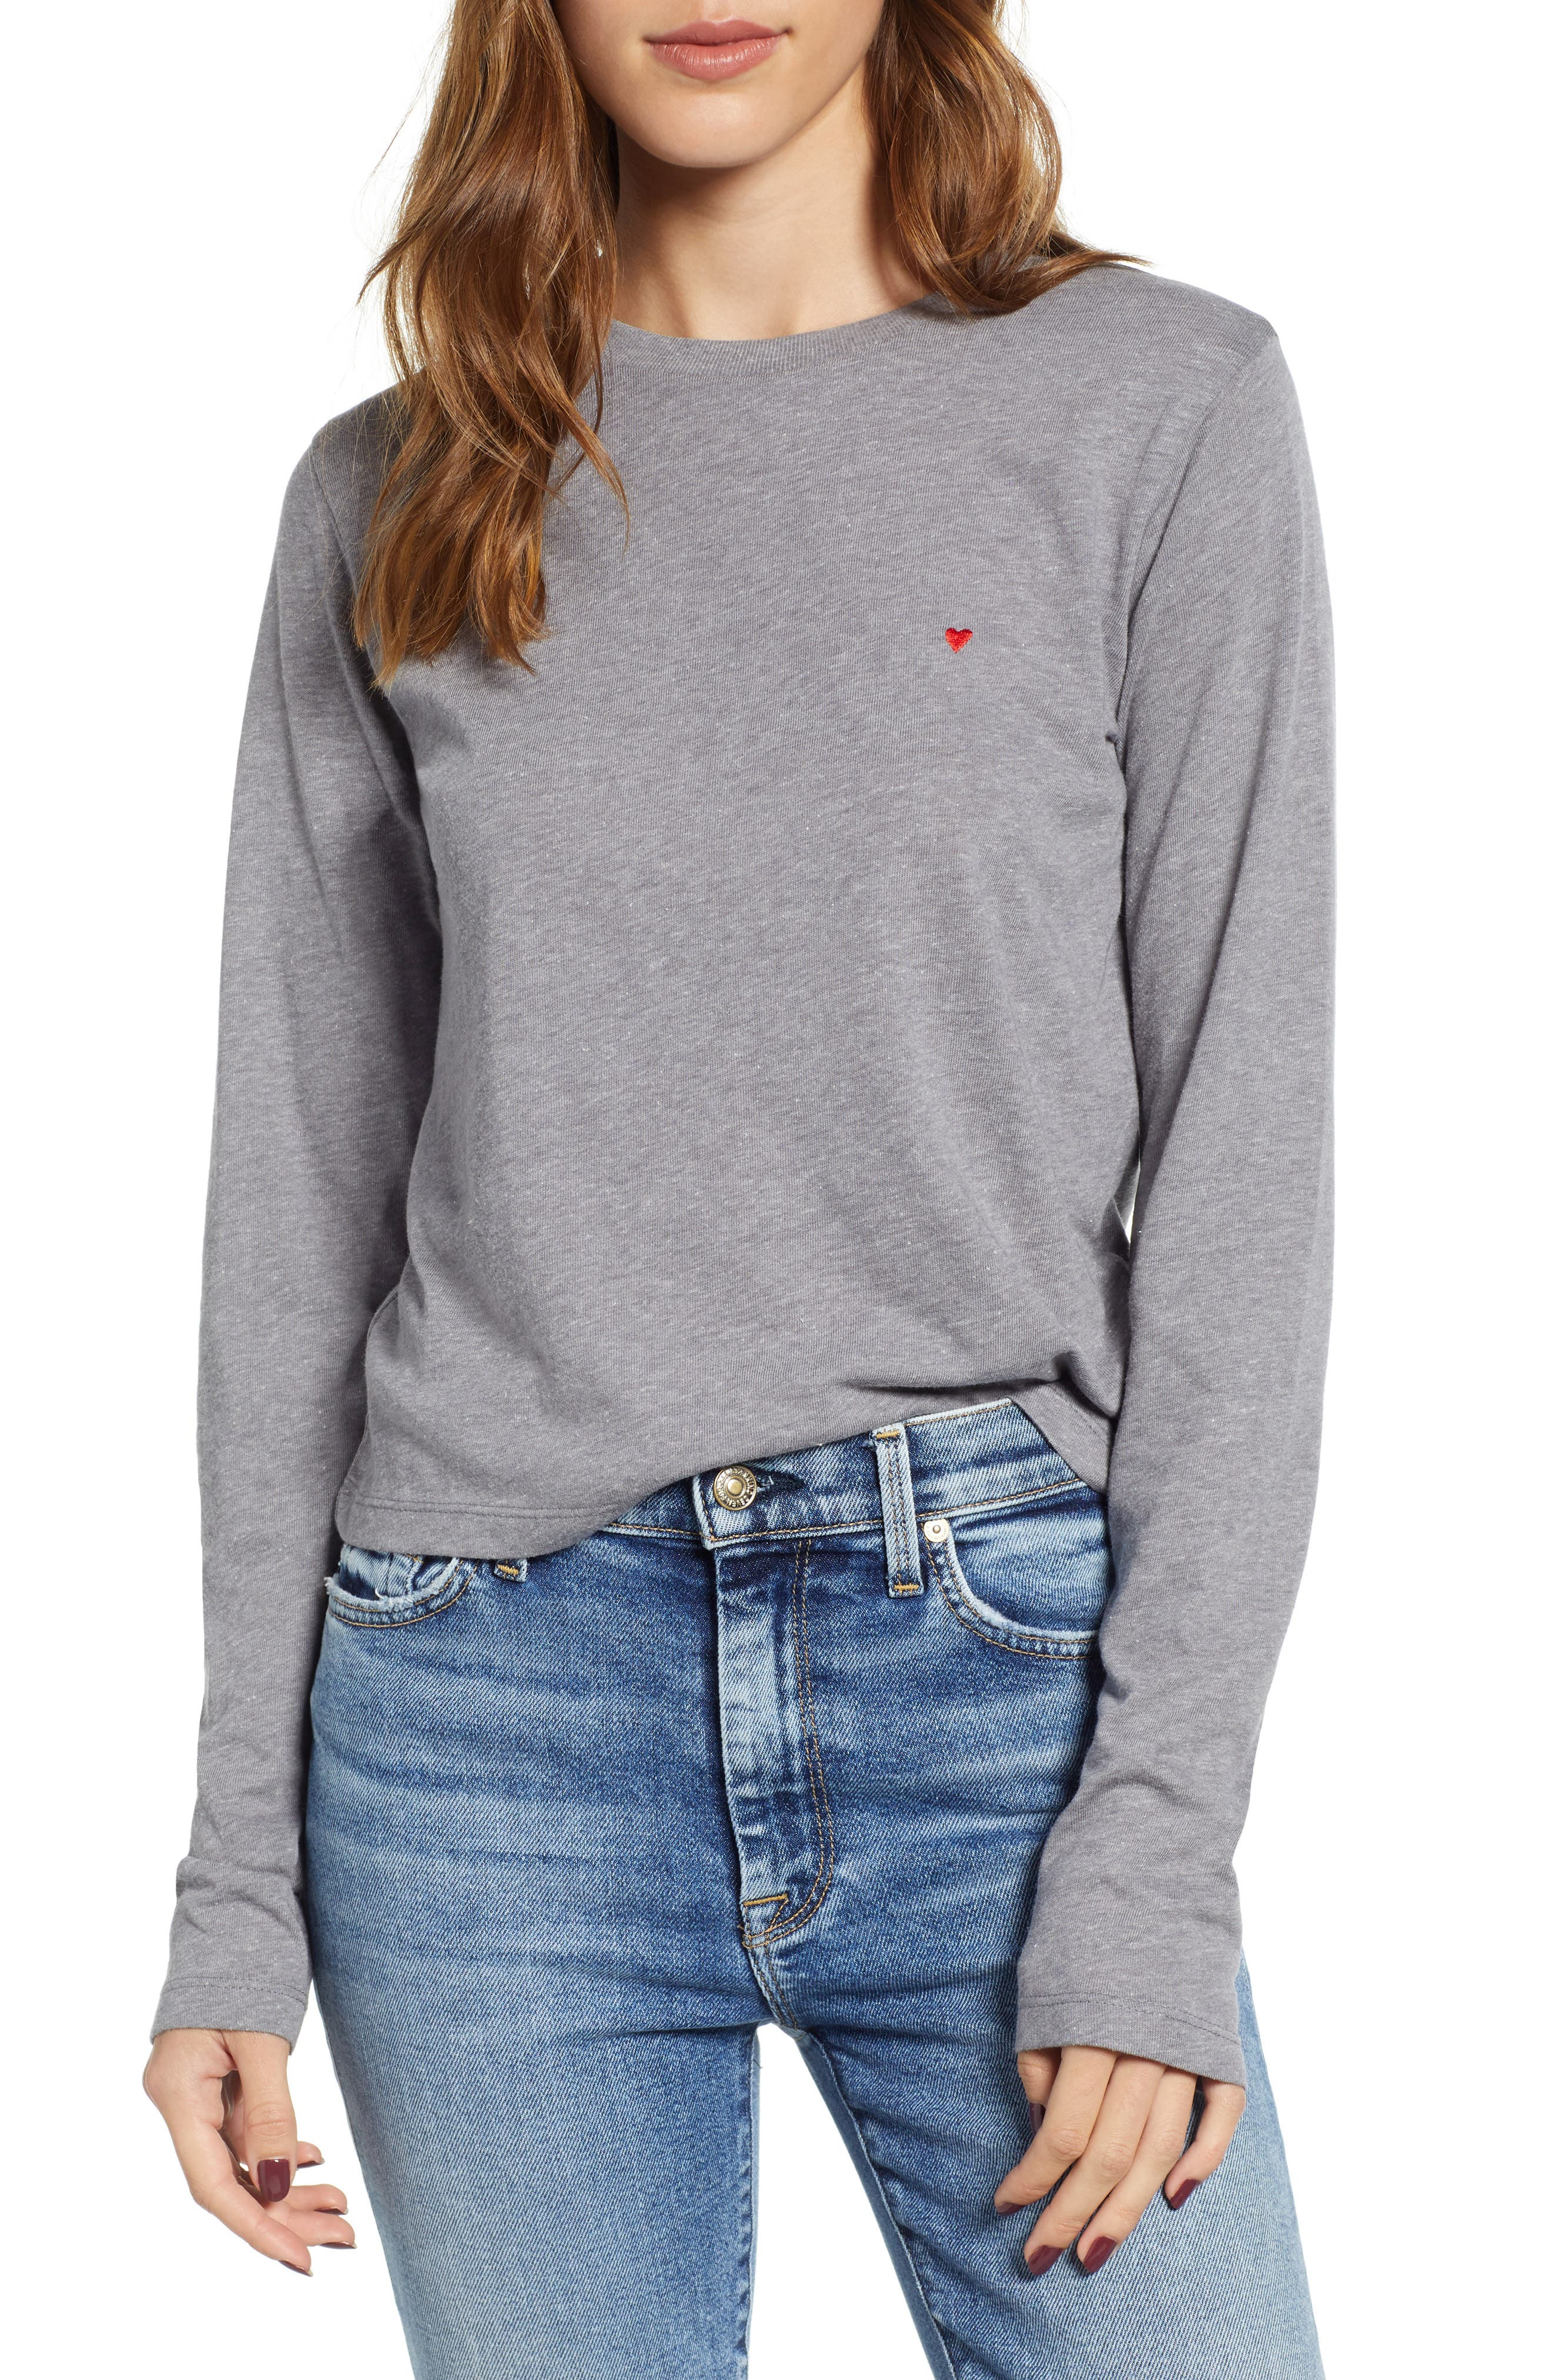 SUB_URBAN RIOT Embroidered Heart Tee in Heather Grey